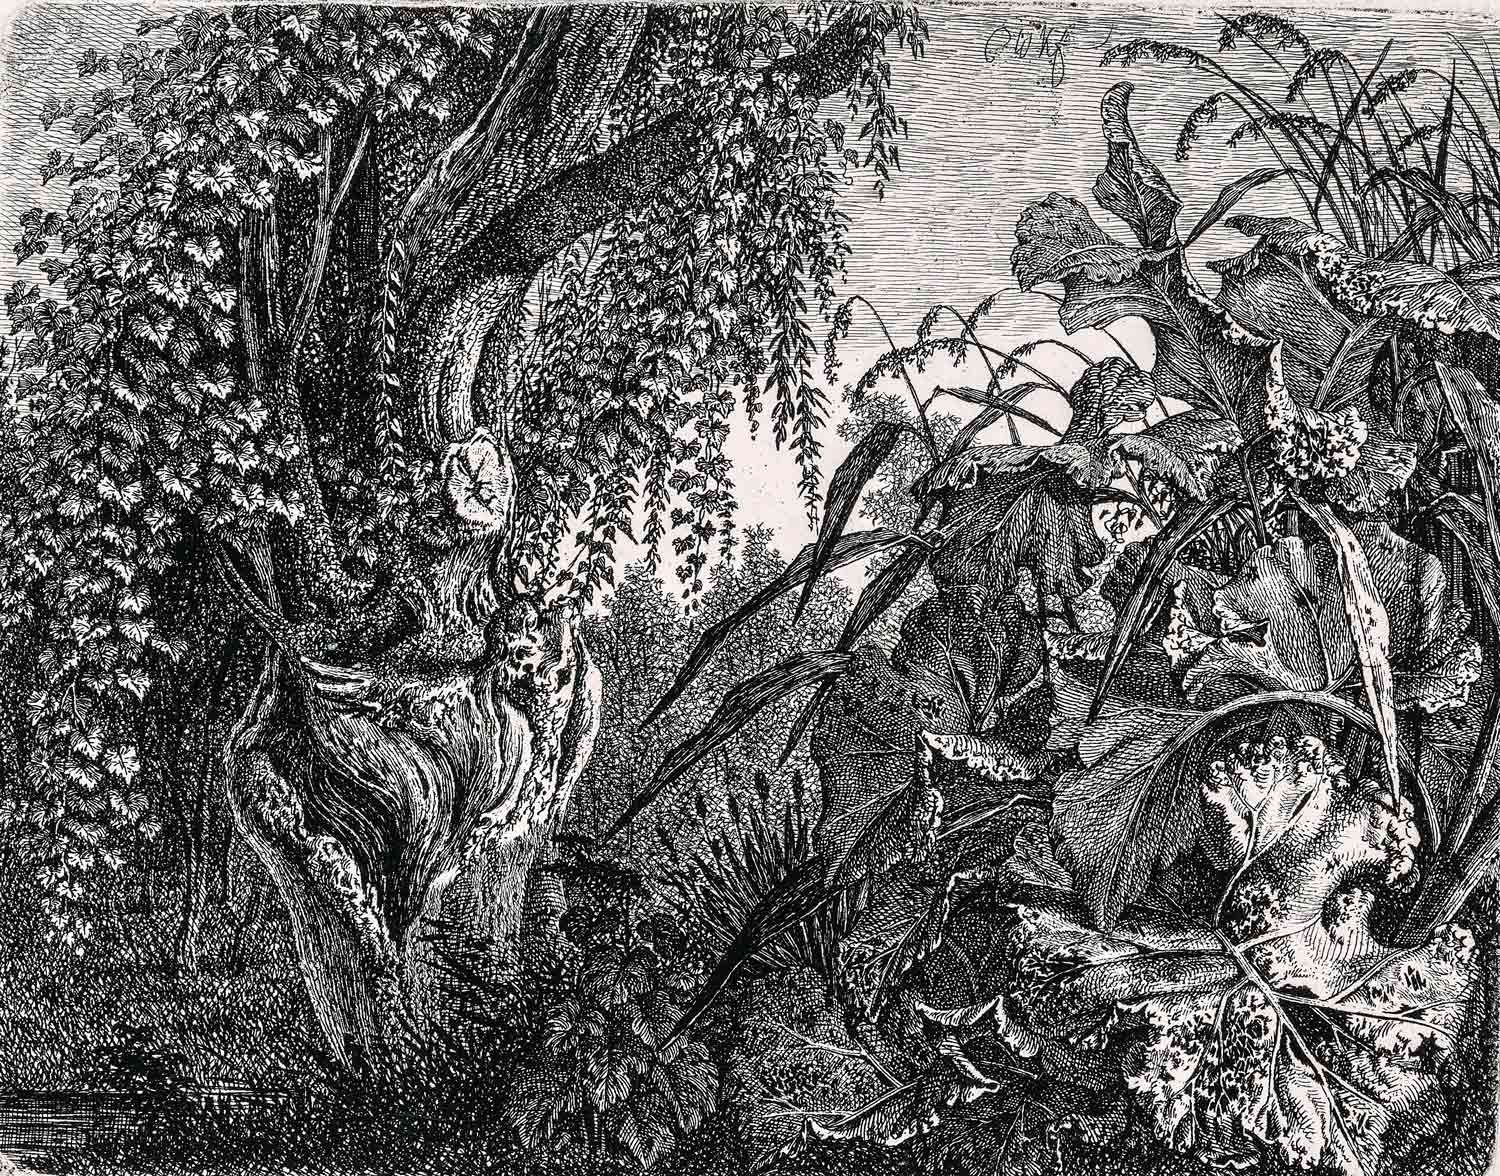 Carl Wilhelm Kolbe (1759-1835), A Thicket; a Gnarled Willow Tree at Left, a Thicket of Vegetation at Right, 1820/35 (probably about 1820), etching. MMFA, purchase, Wake Robin Fund in memory of Nelo St.B. Harrison